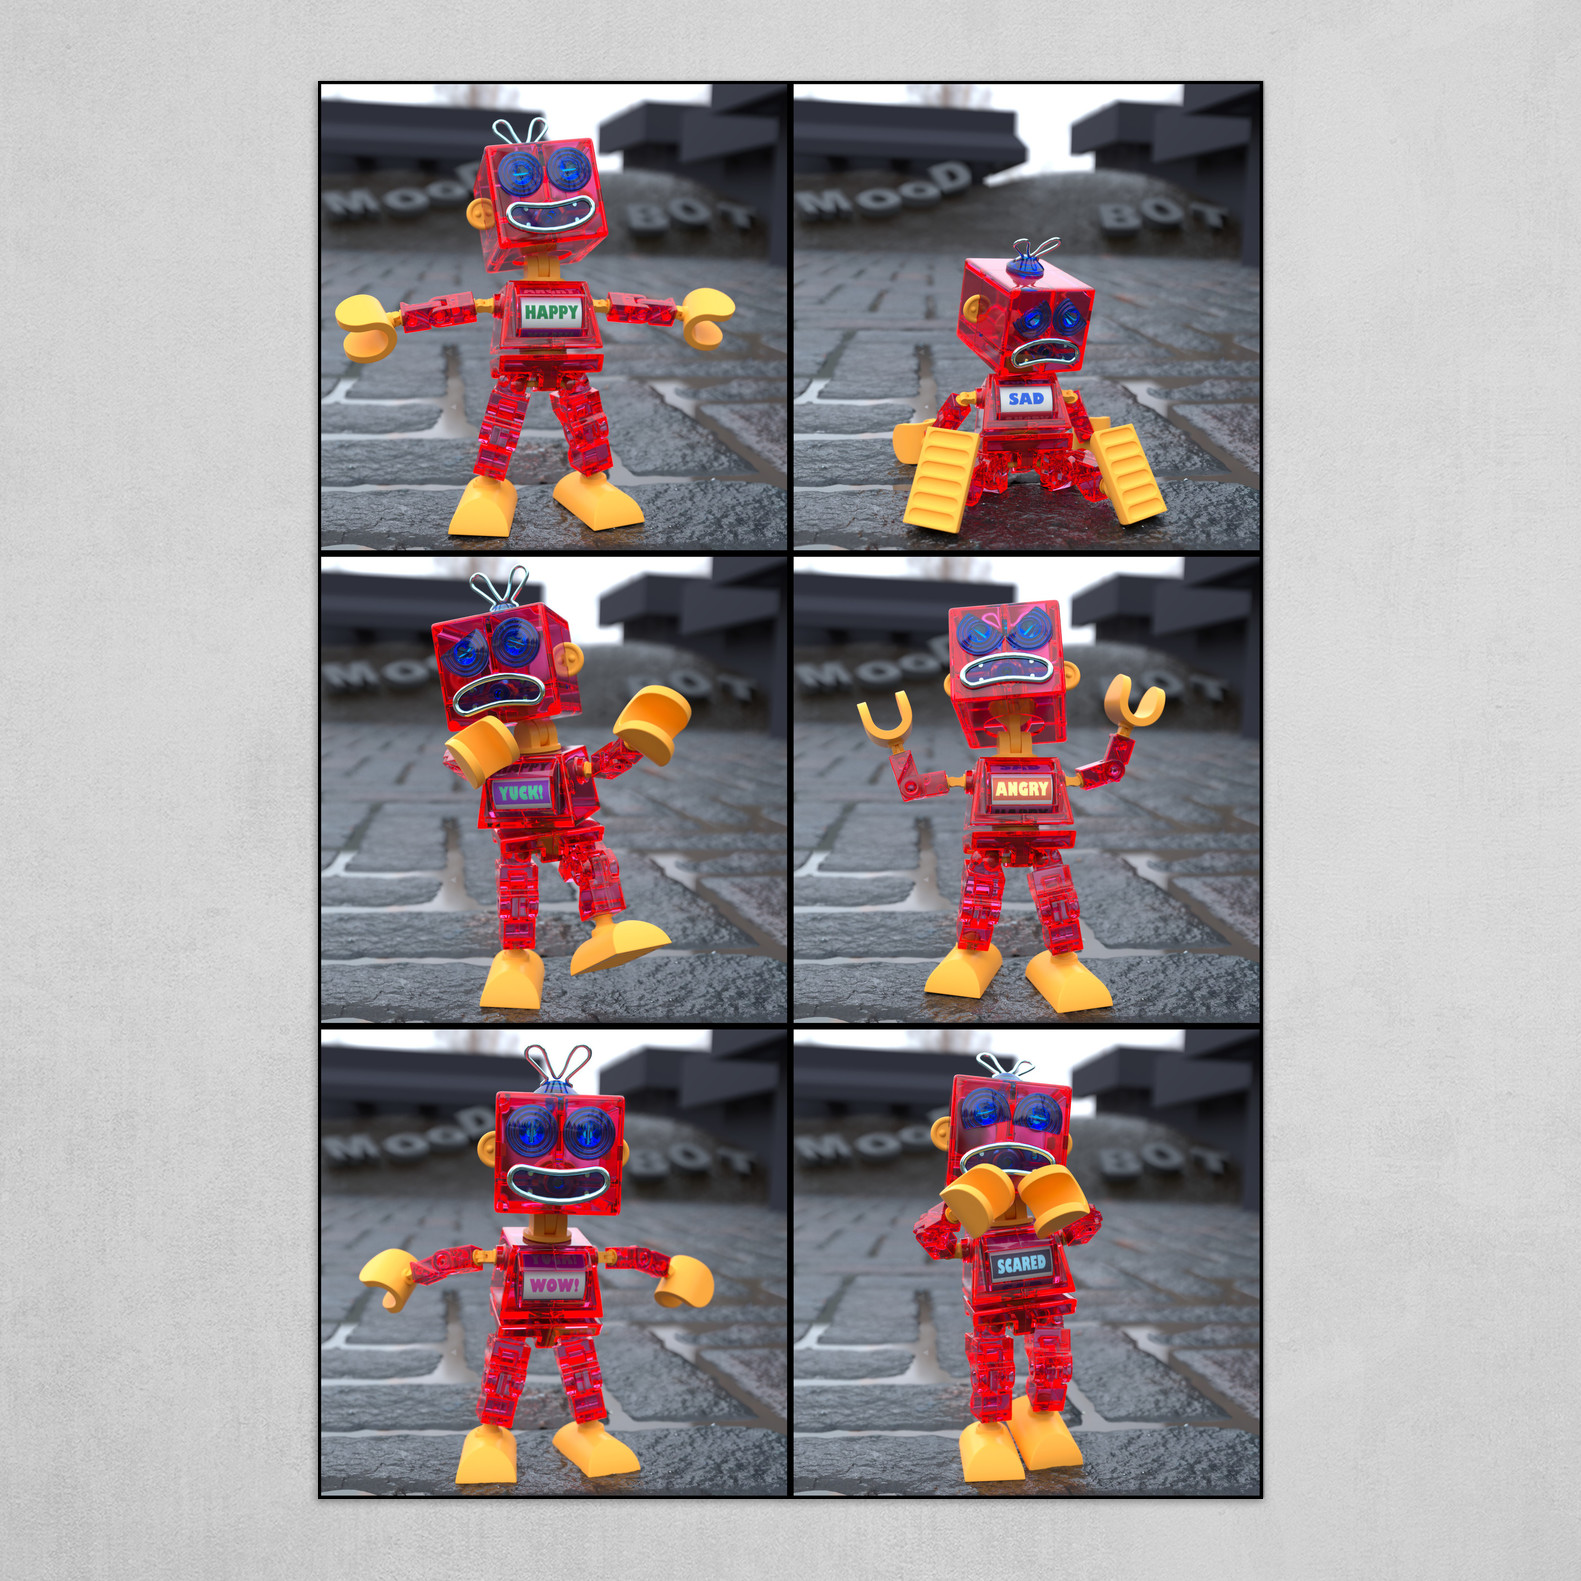 Six moods of a Toy Robot